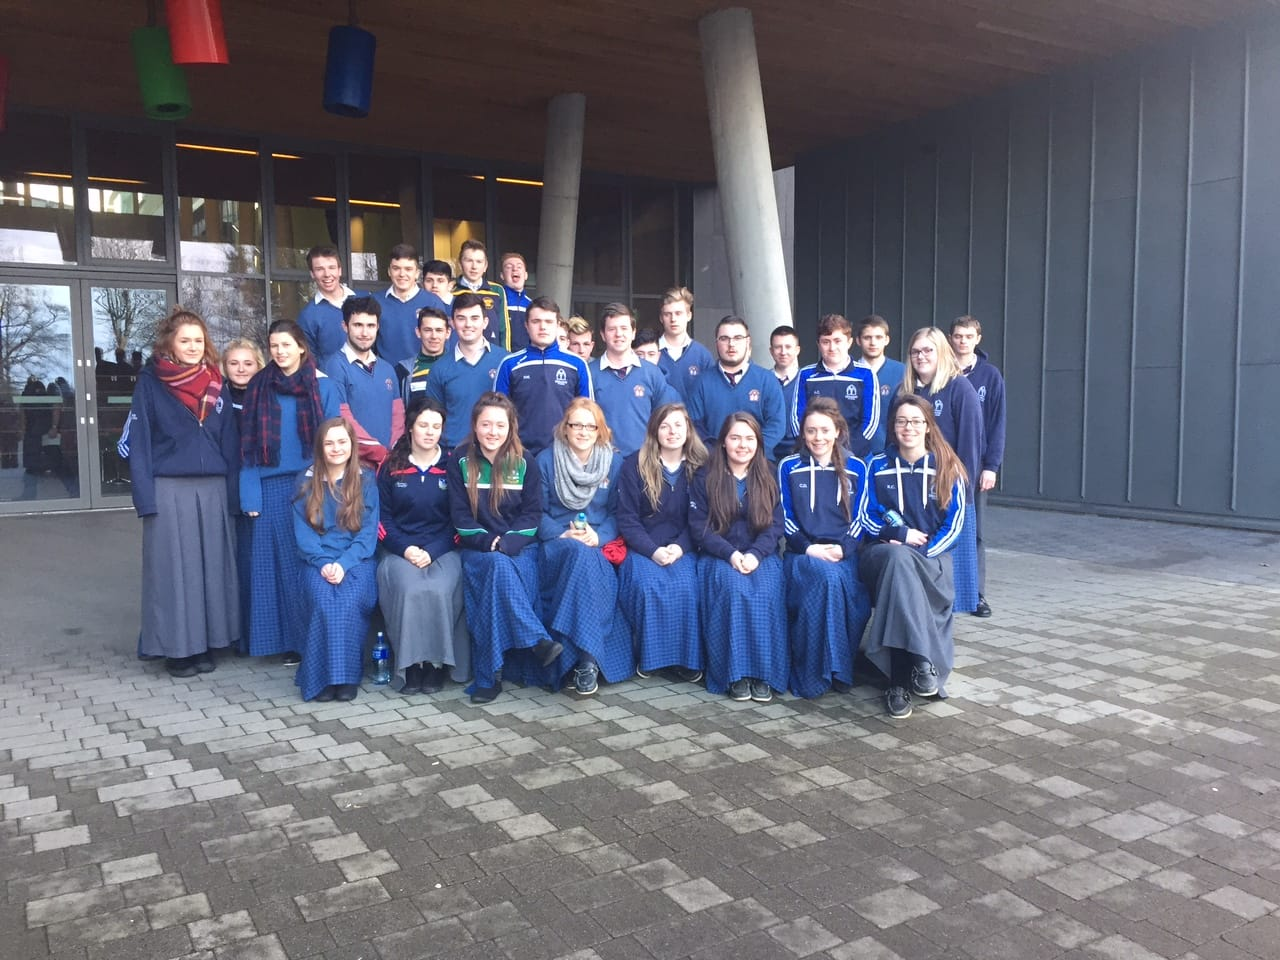 Jan 2016: Leaving Cert Students at the Lime Tree Theatre in Limerick following a performance of King Lear as part of their English Syllabus